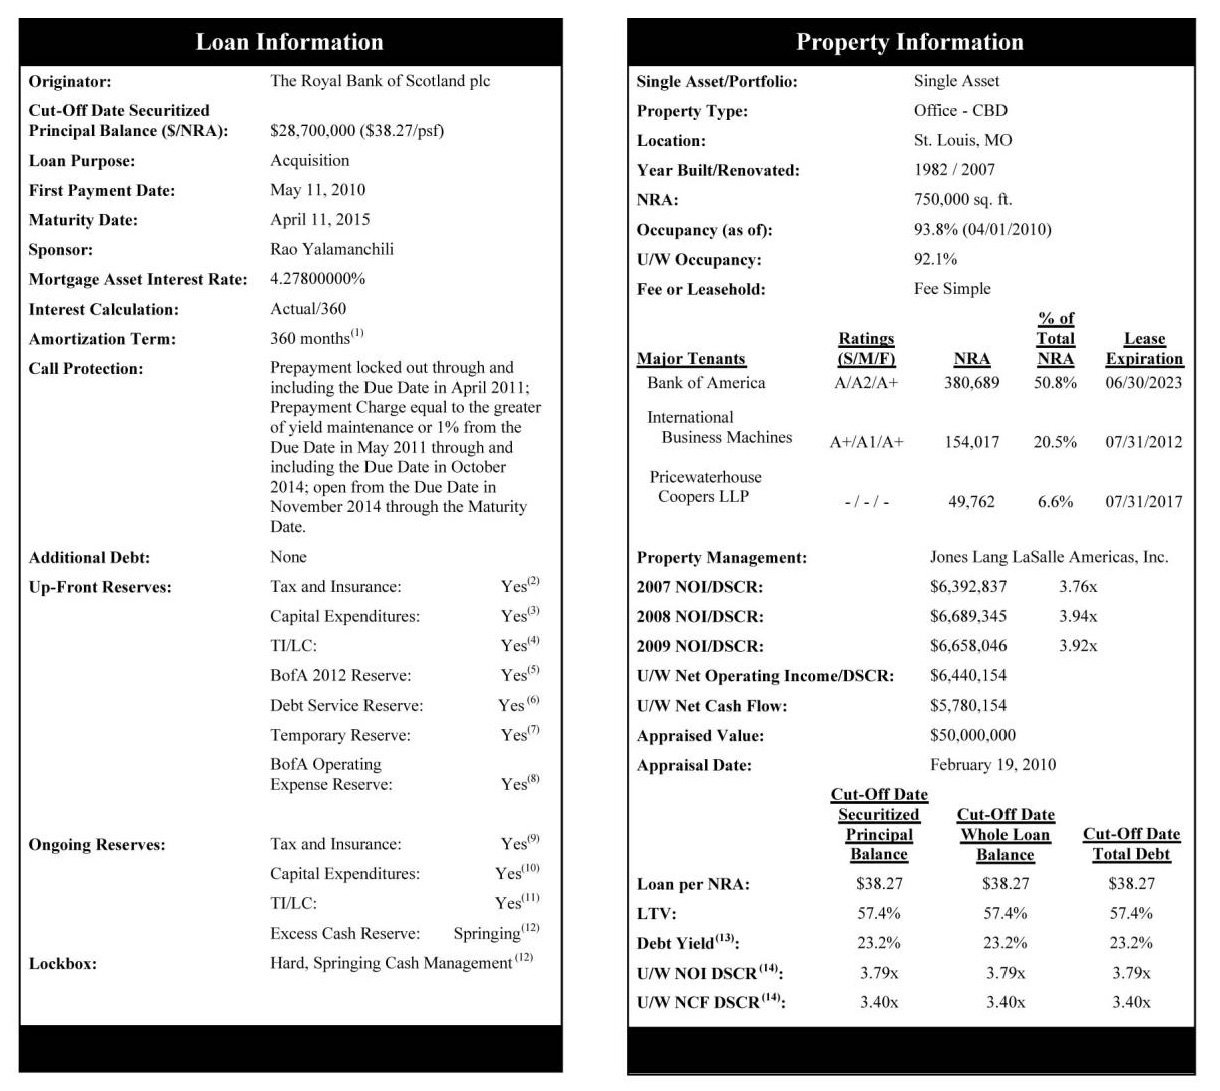 Yield Maintenance Spreadsheet With Sage Business Cases  The Return Of The Loan: Commercial Mortgage